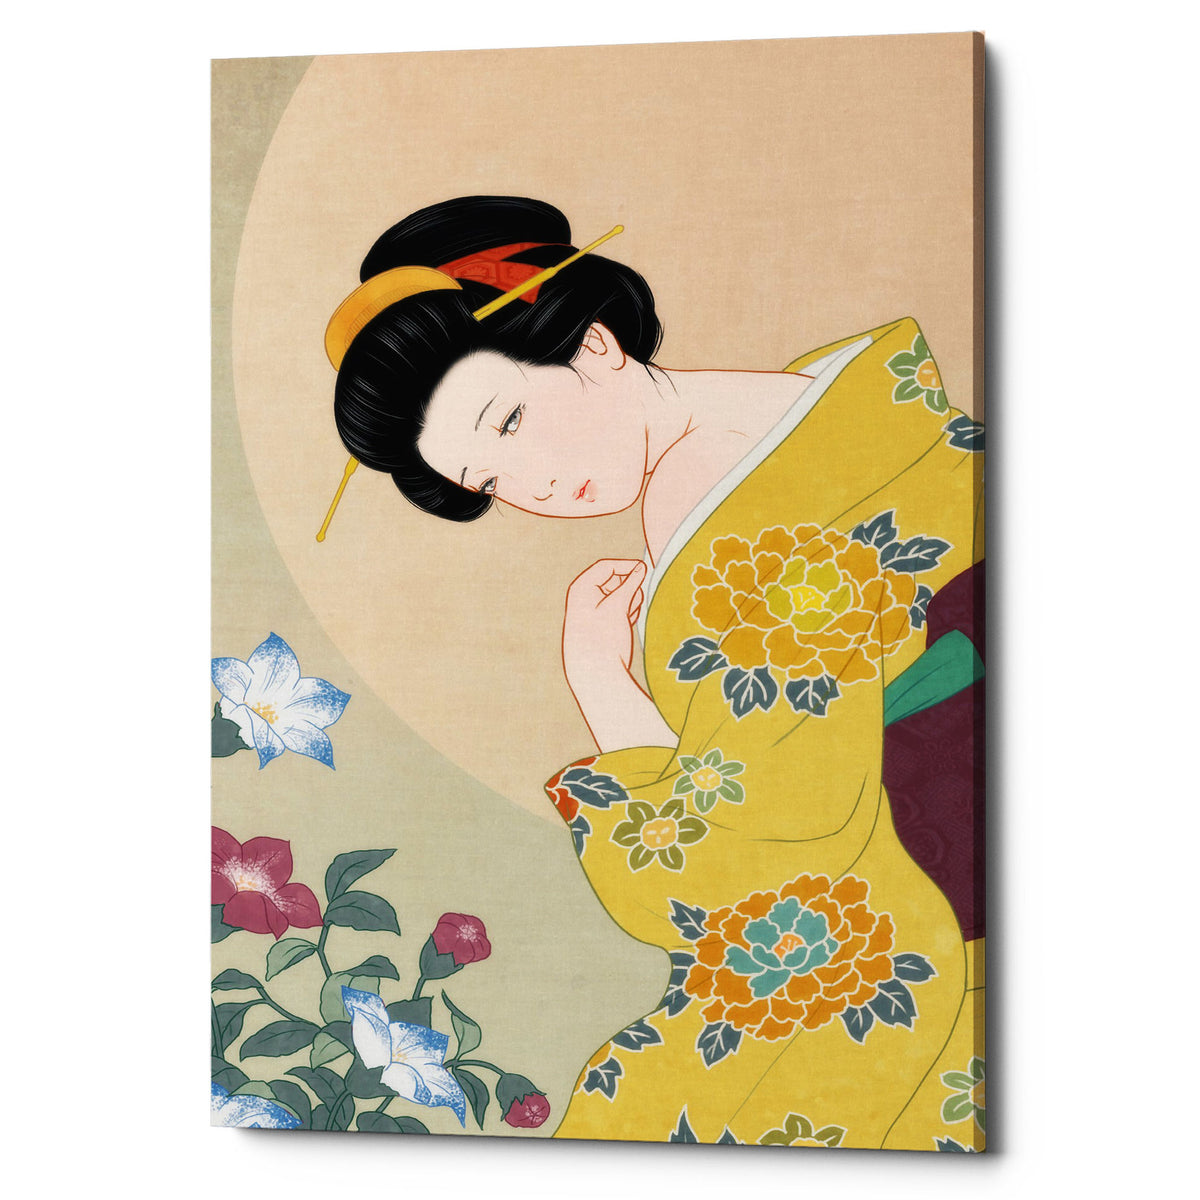 "Epic Graffiti ""Kikyou"" by Sai Tamiya, Giclee Canvas Wall Art, 18""x26"""